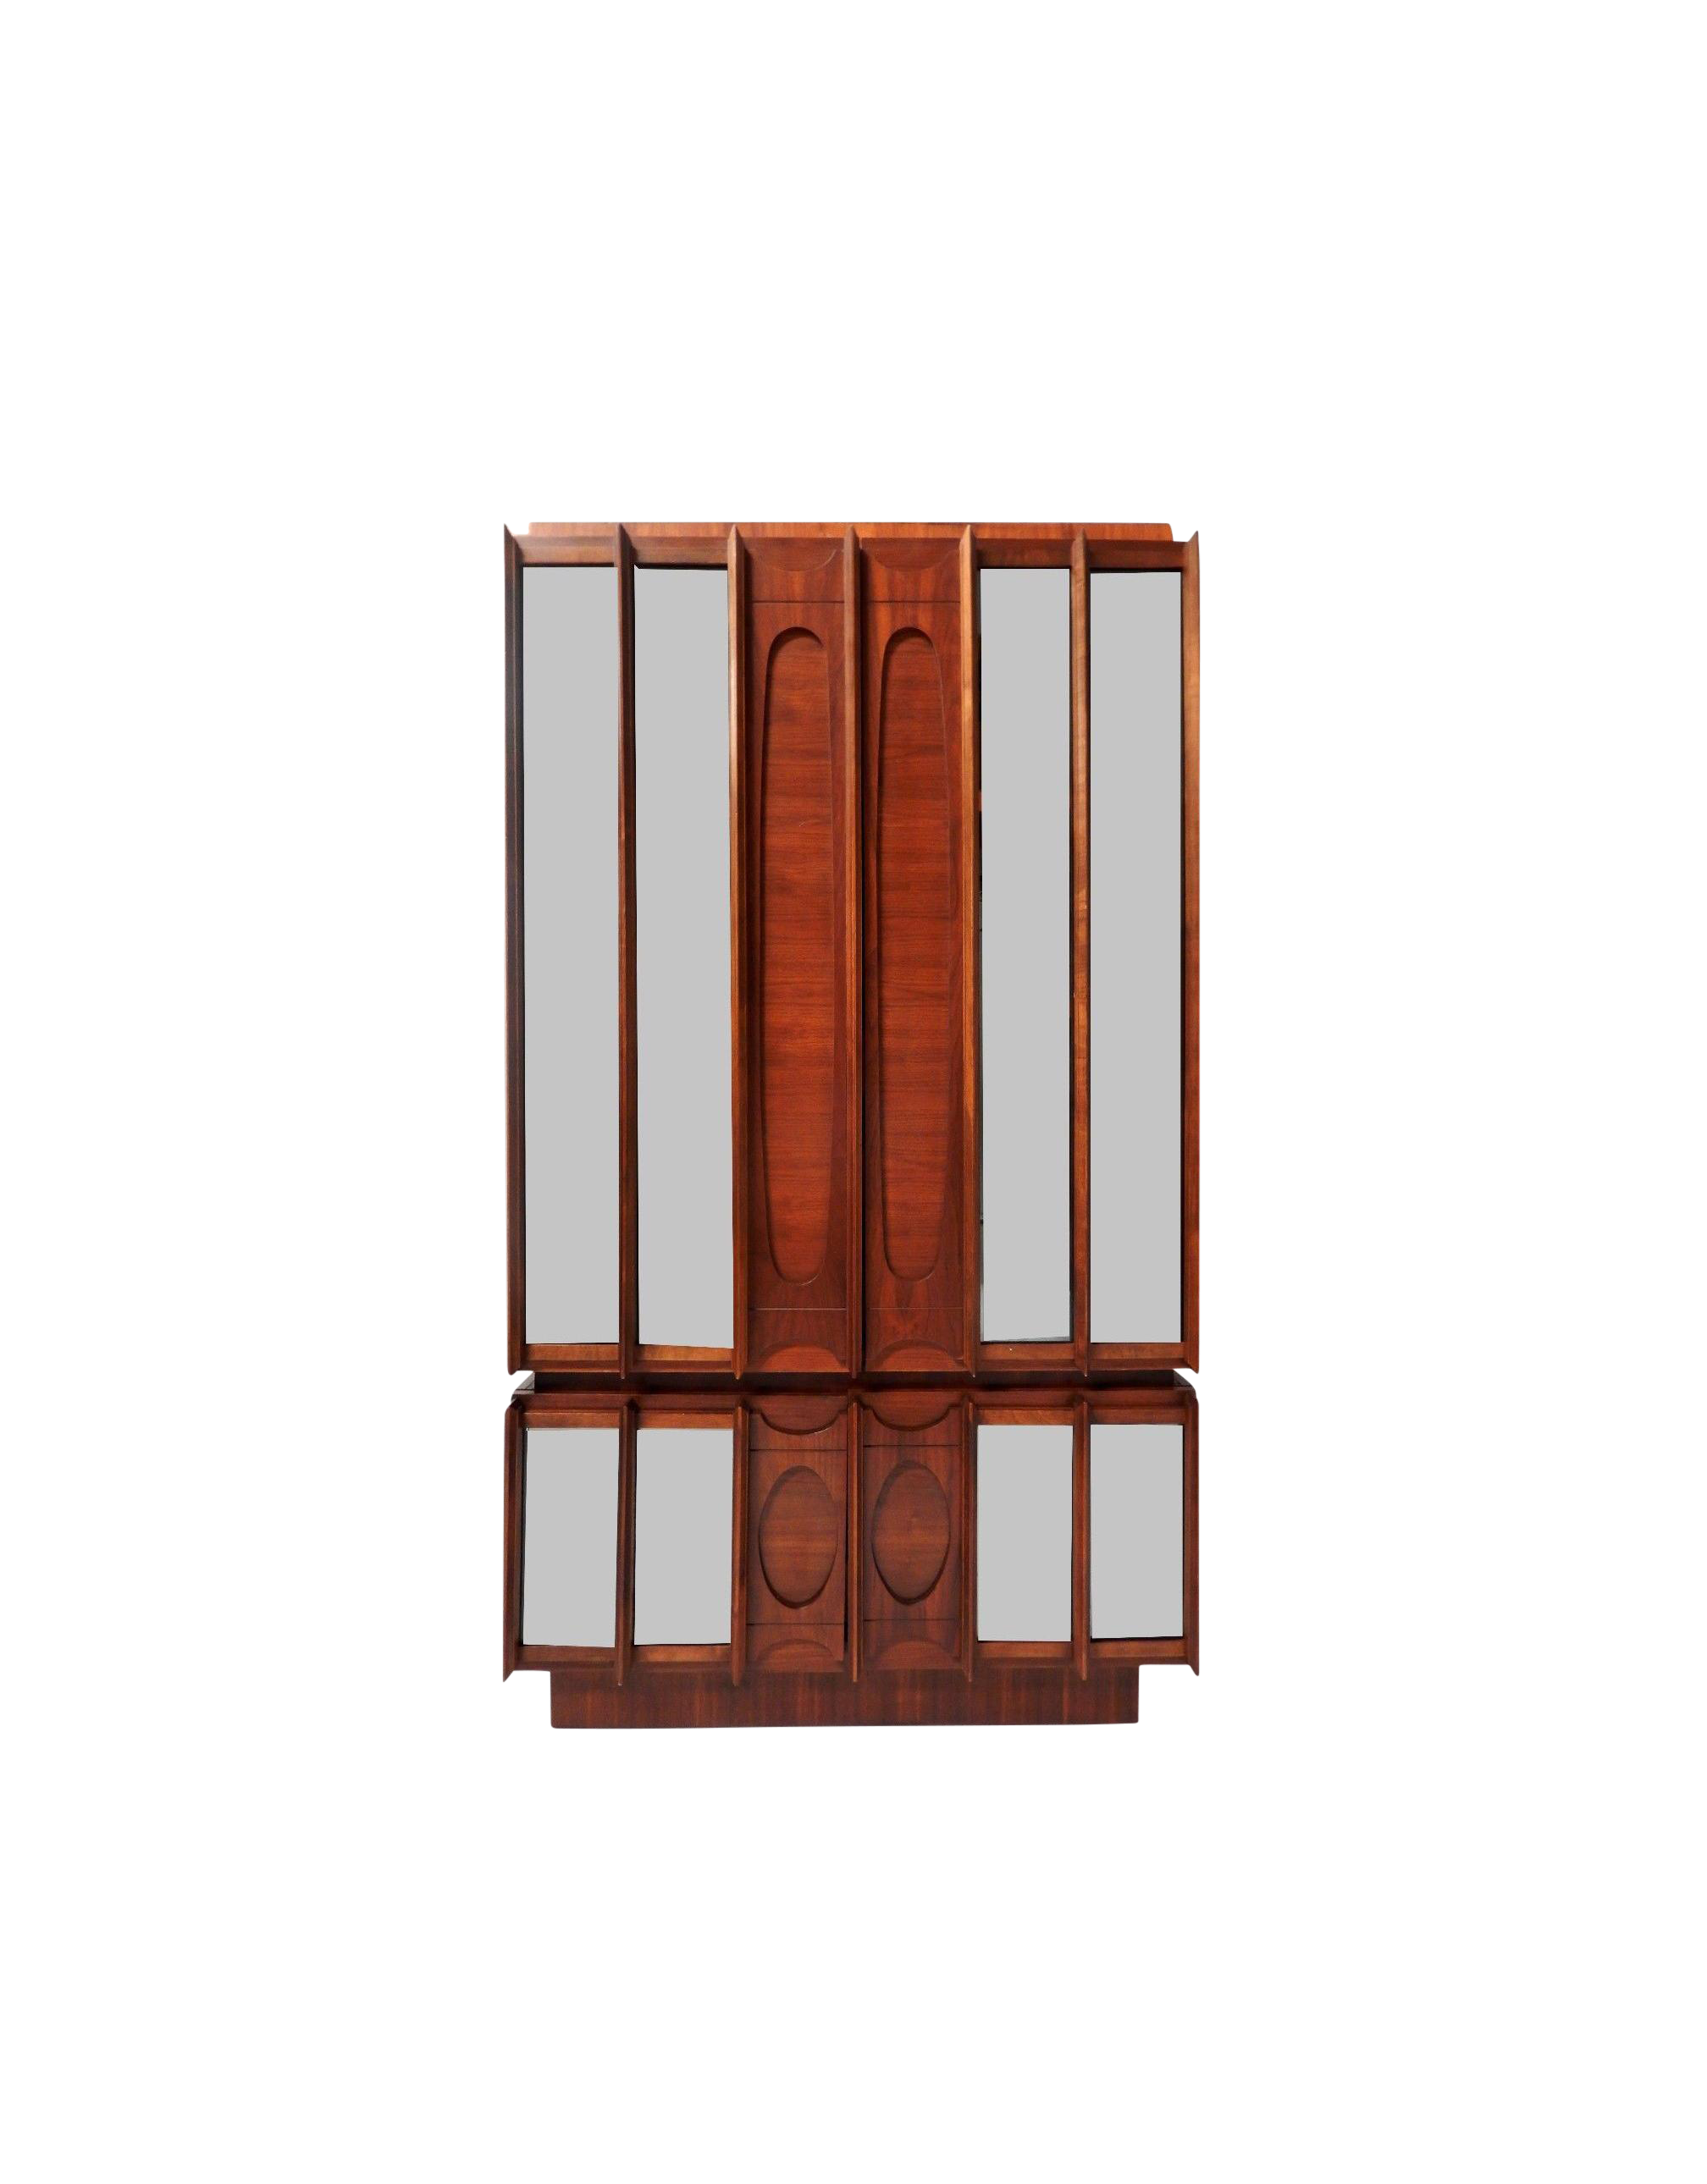 Mid Century Brutalist Wood amp Mirrored Armoire Chairish : mid century brutalist wood and mirrored armoire 8291 from www.chairish.com size 2016 x 2580 png 1034kB